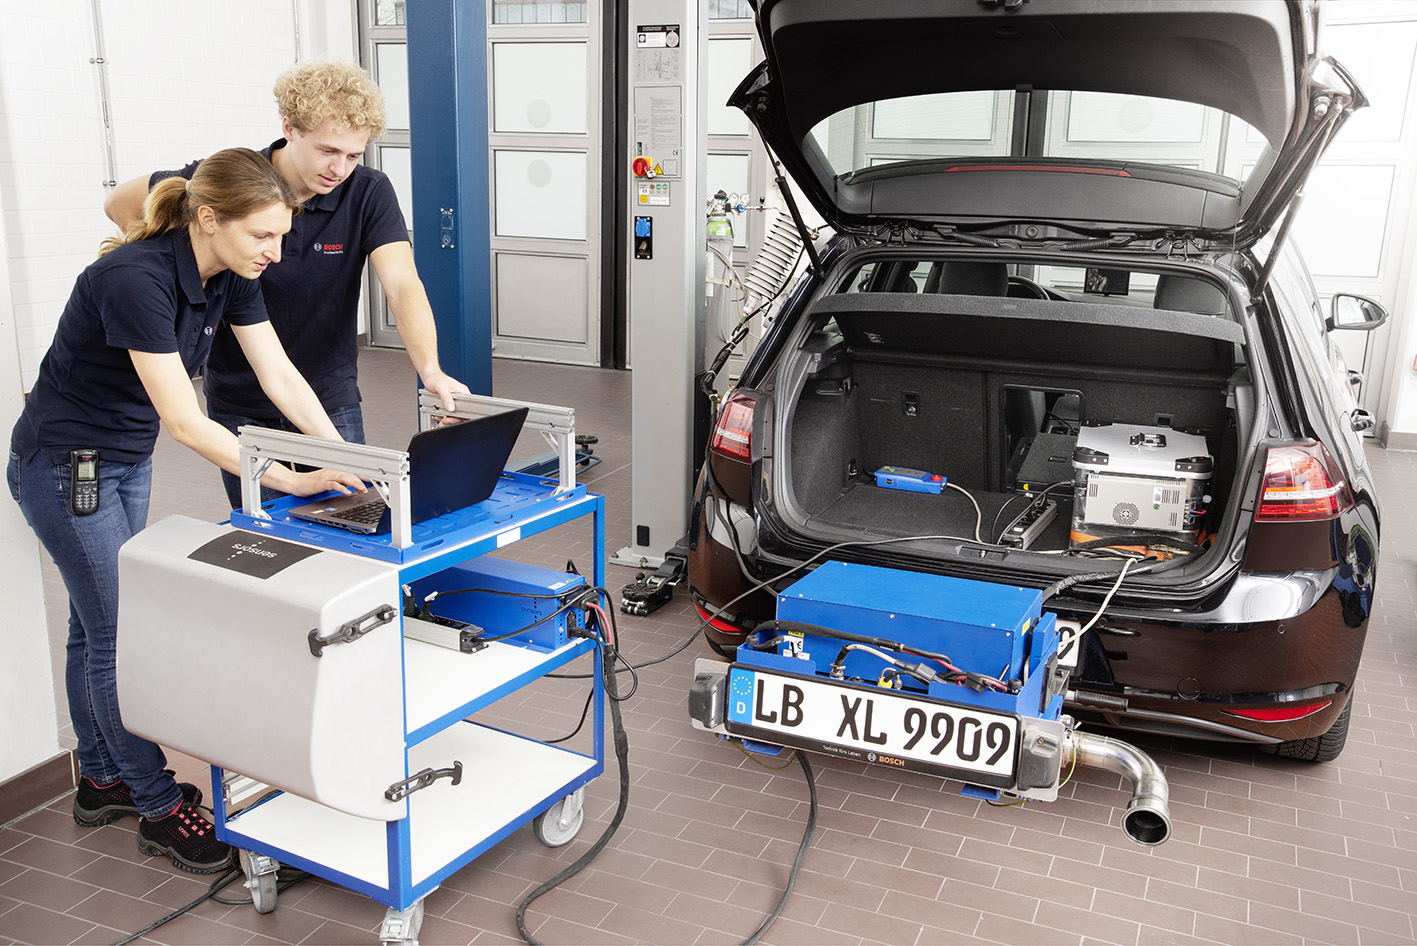 New Bosch technology retains advantage with regard to fuel consumption and environmental impact